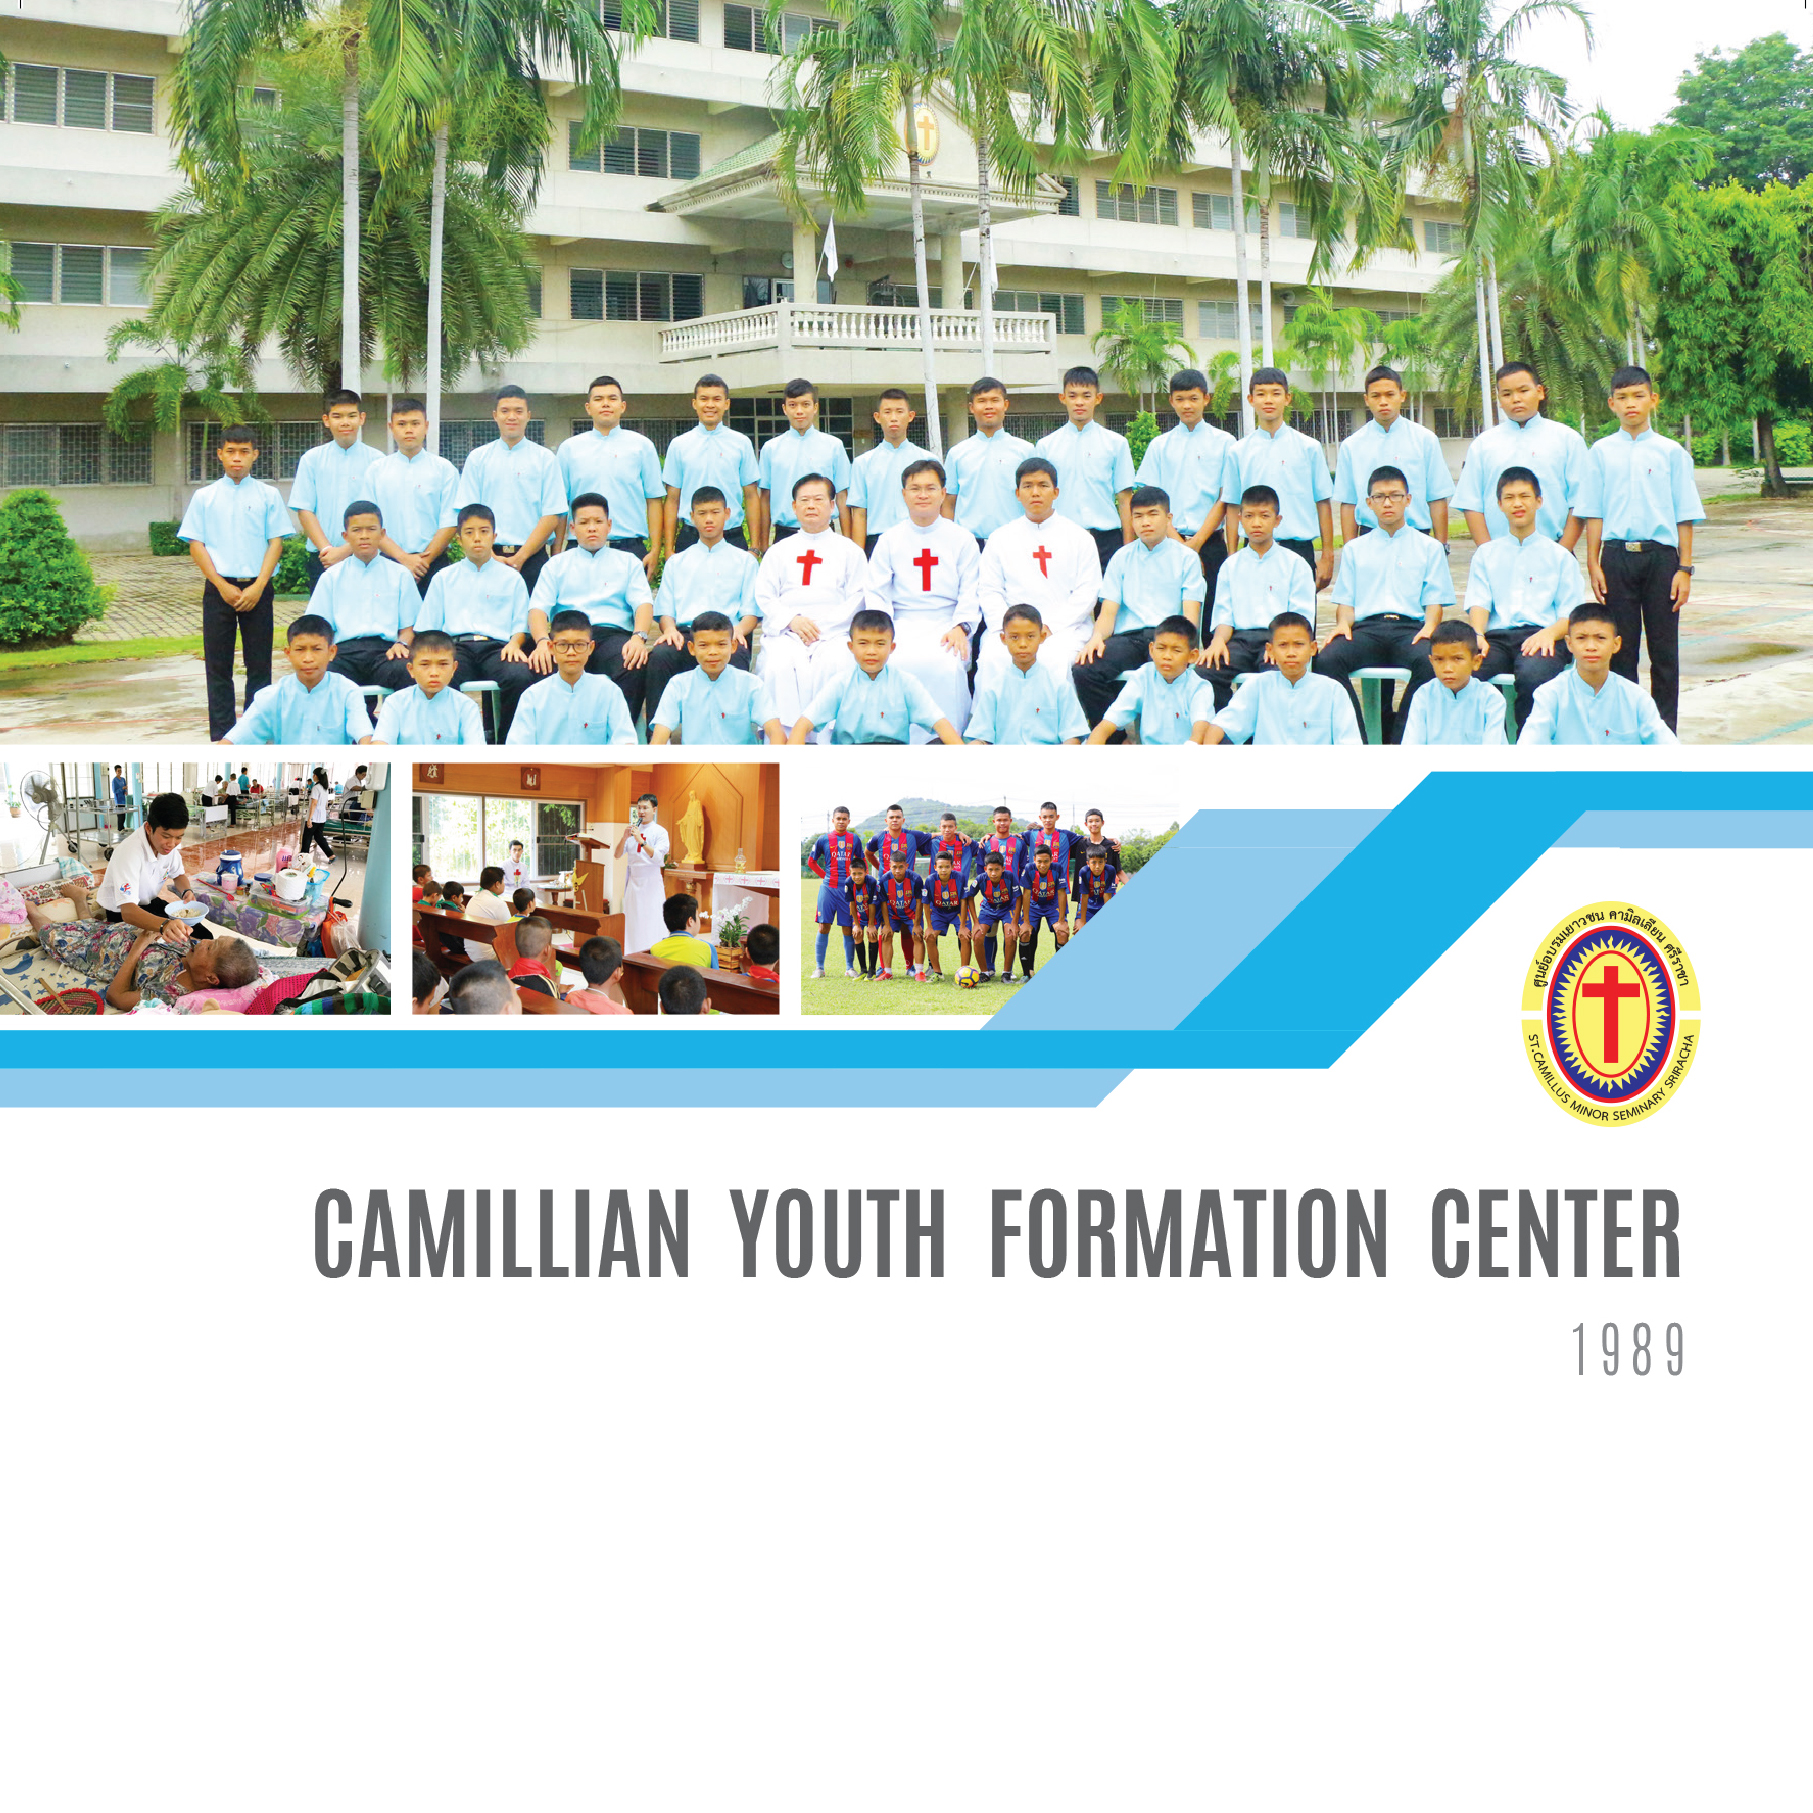 Camillian Youth Formation Center